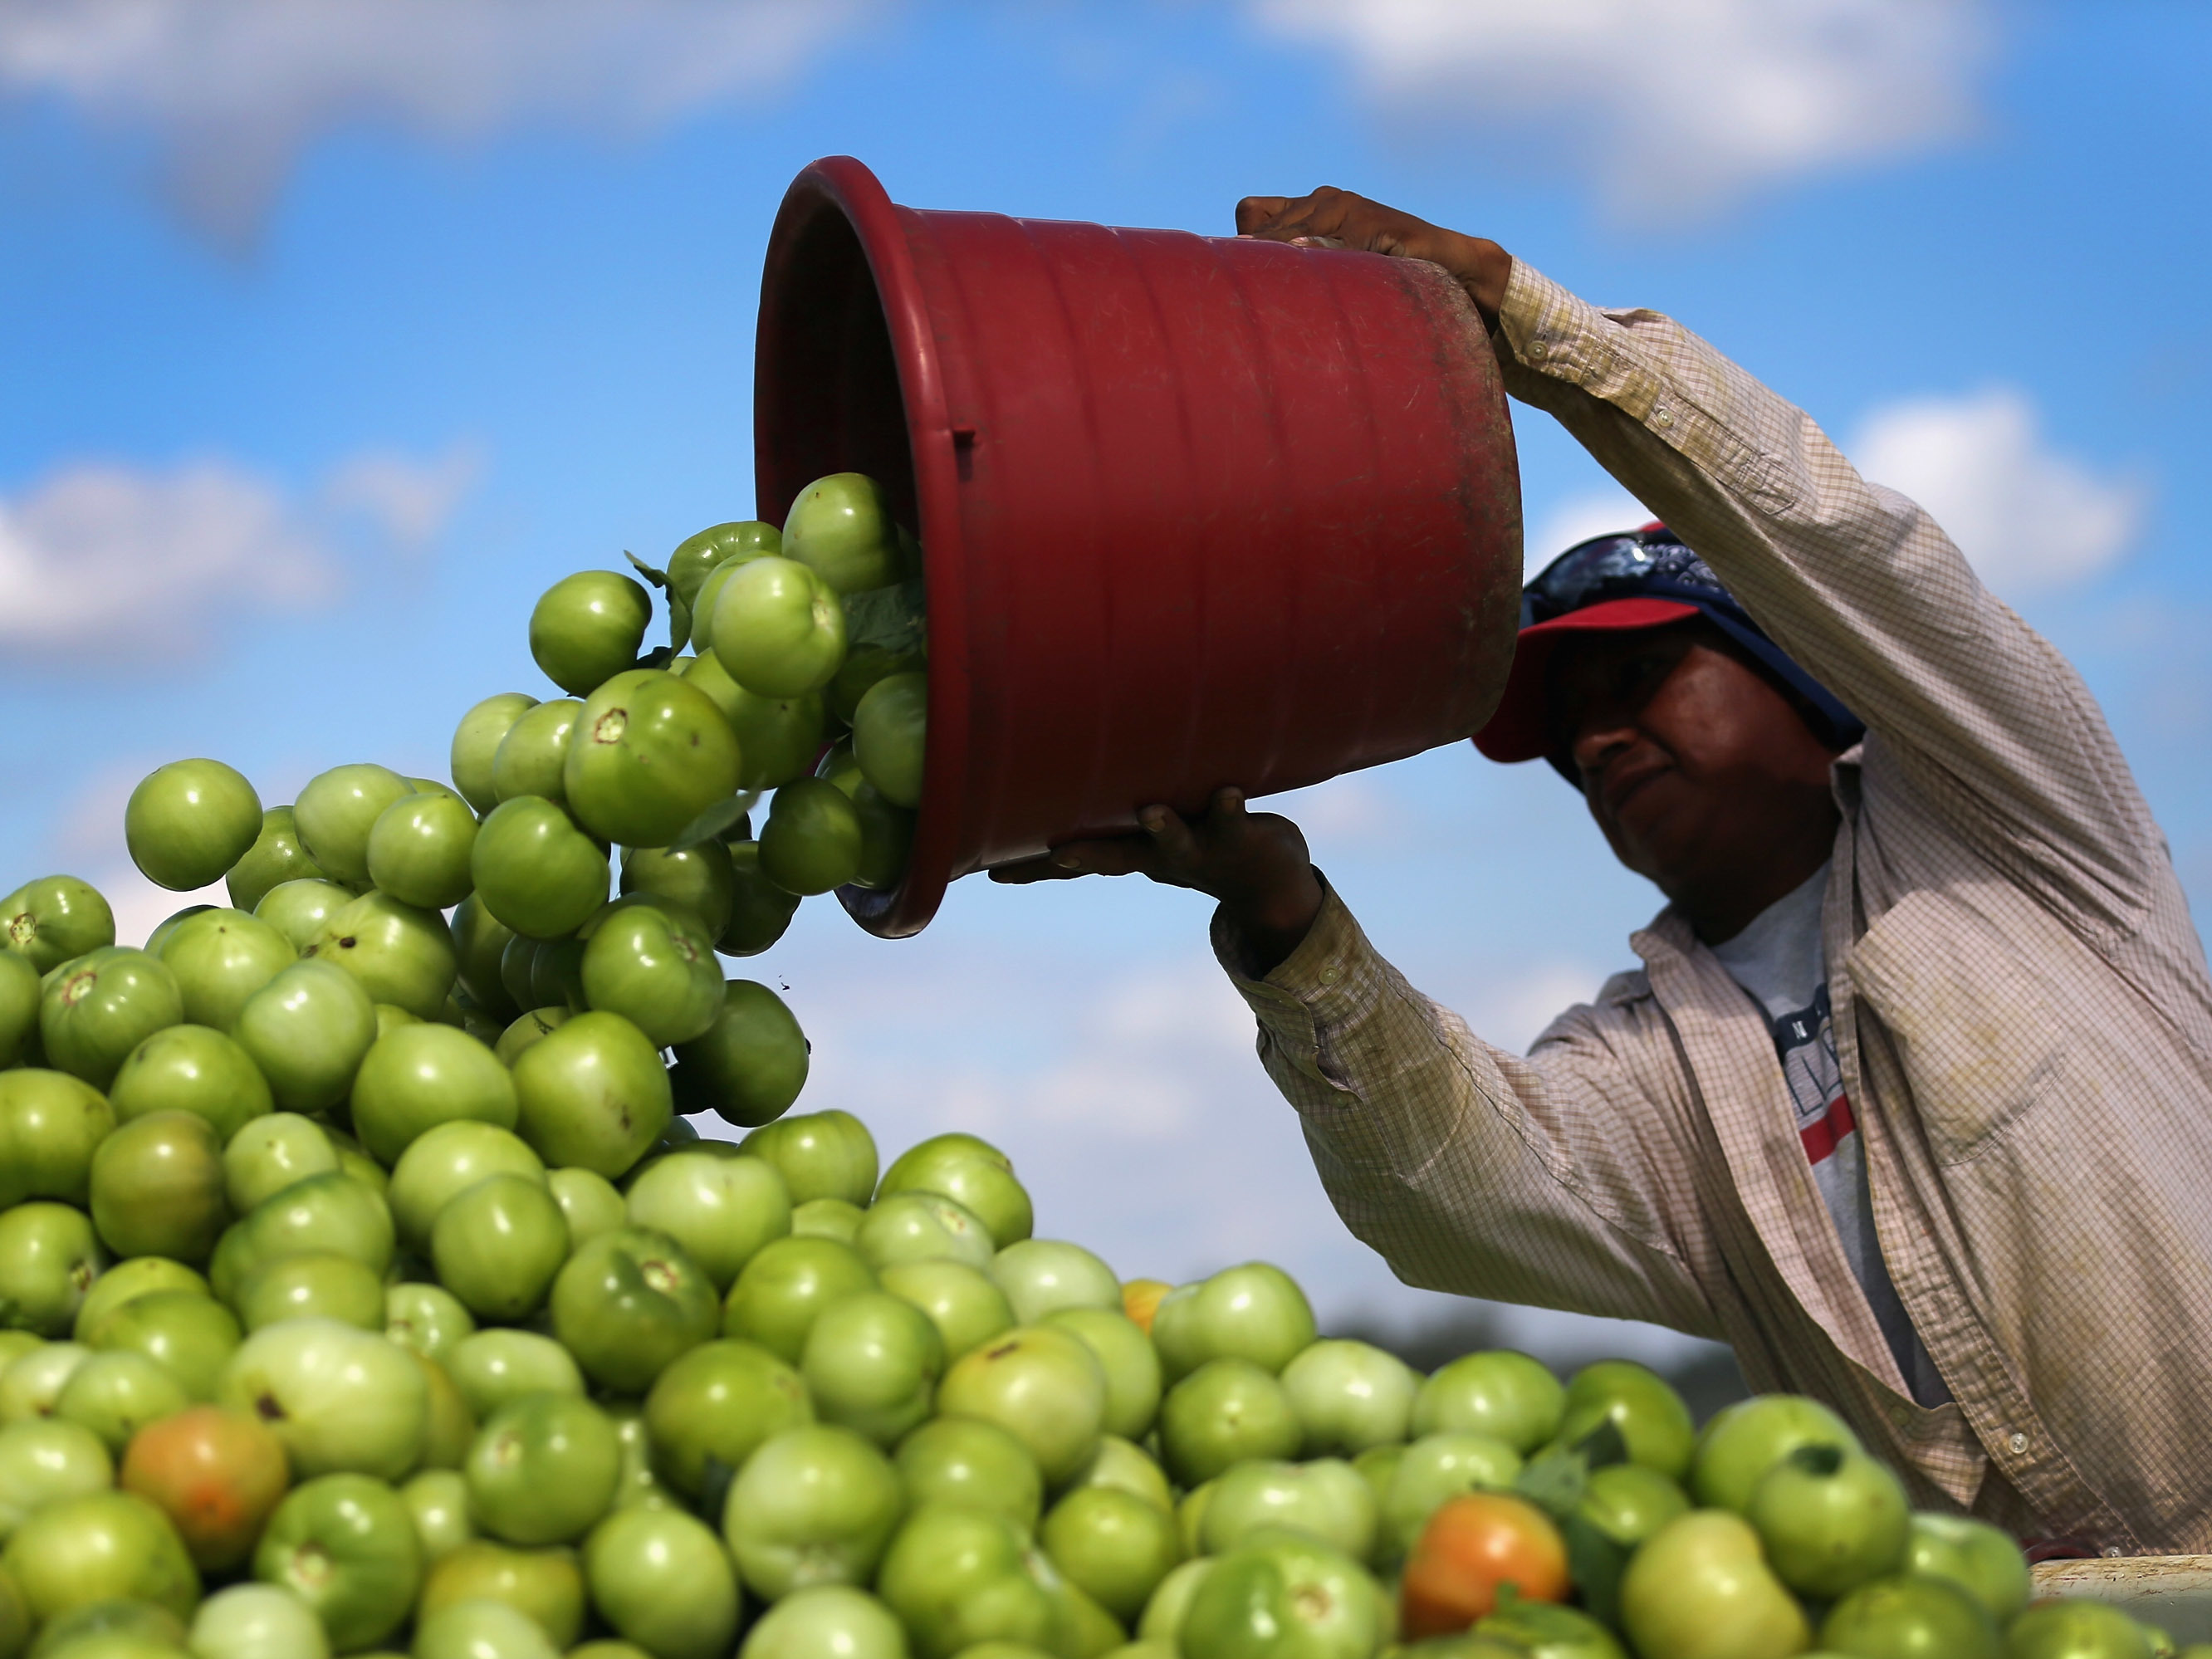 A worker dumps a bucket of tomatoes into a trailer at DiMare Farms in Florida City, Fla., in 2013. The Trump administration is preparing to level a new tariff on fresh tomatoes imported from Mexico in response to complaints from Florida growers. (Joe Raedle/Getty Images)